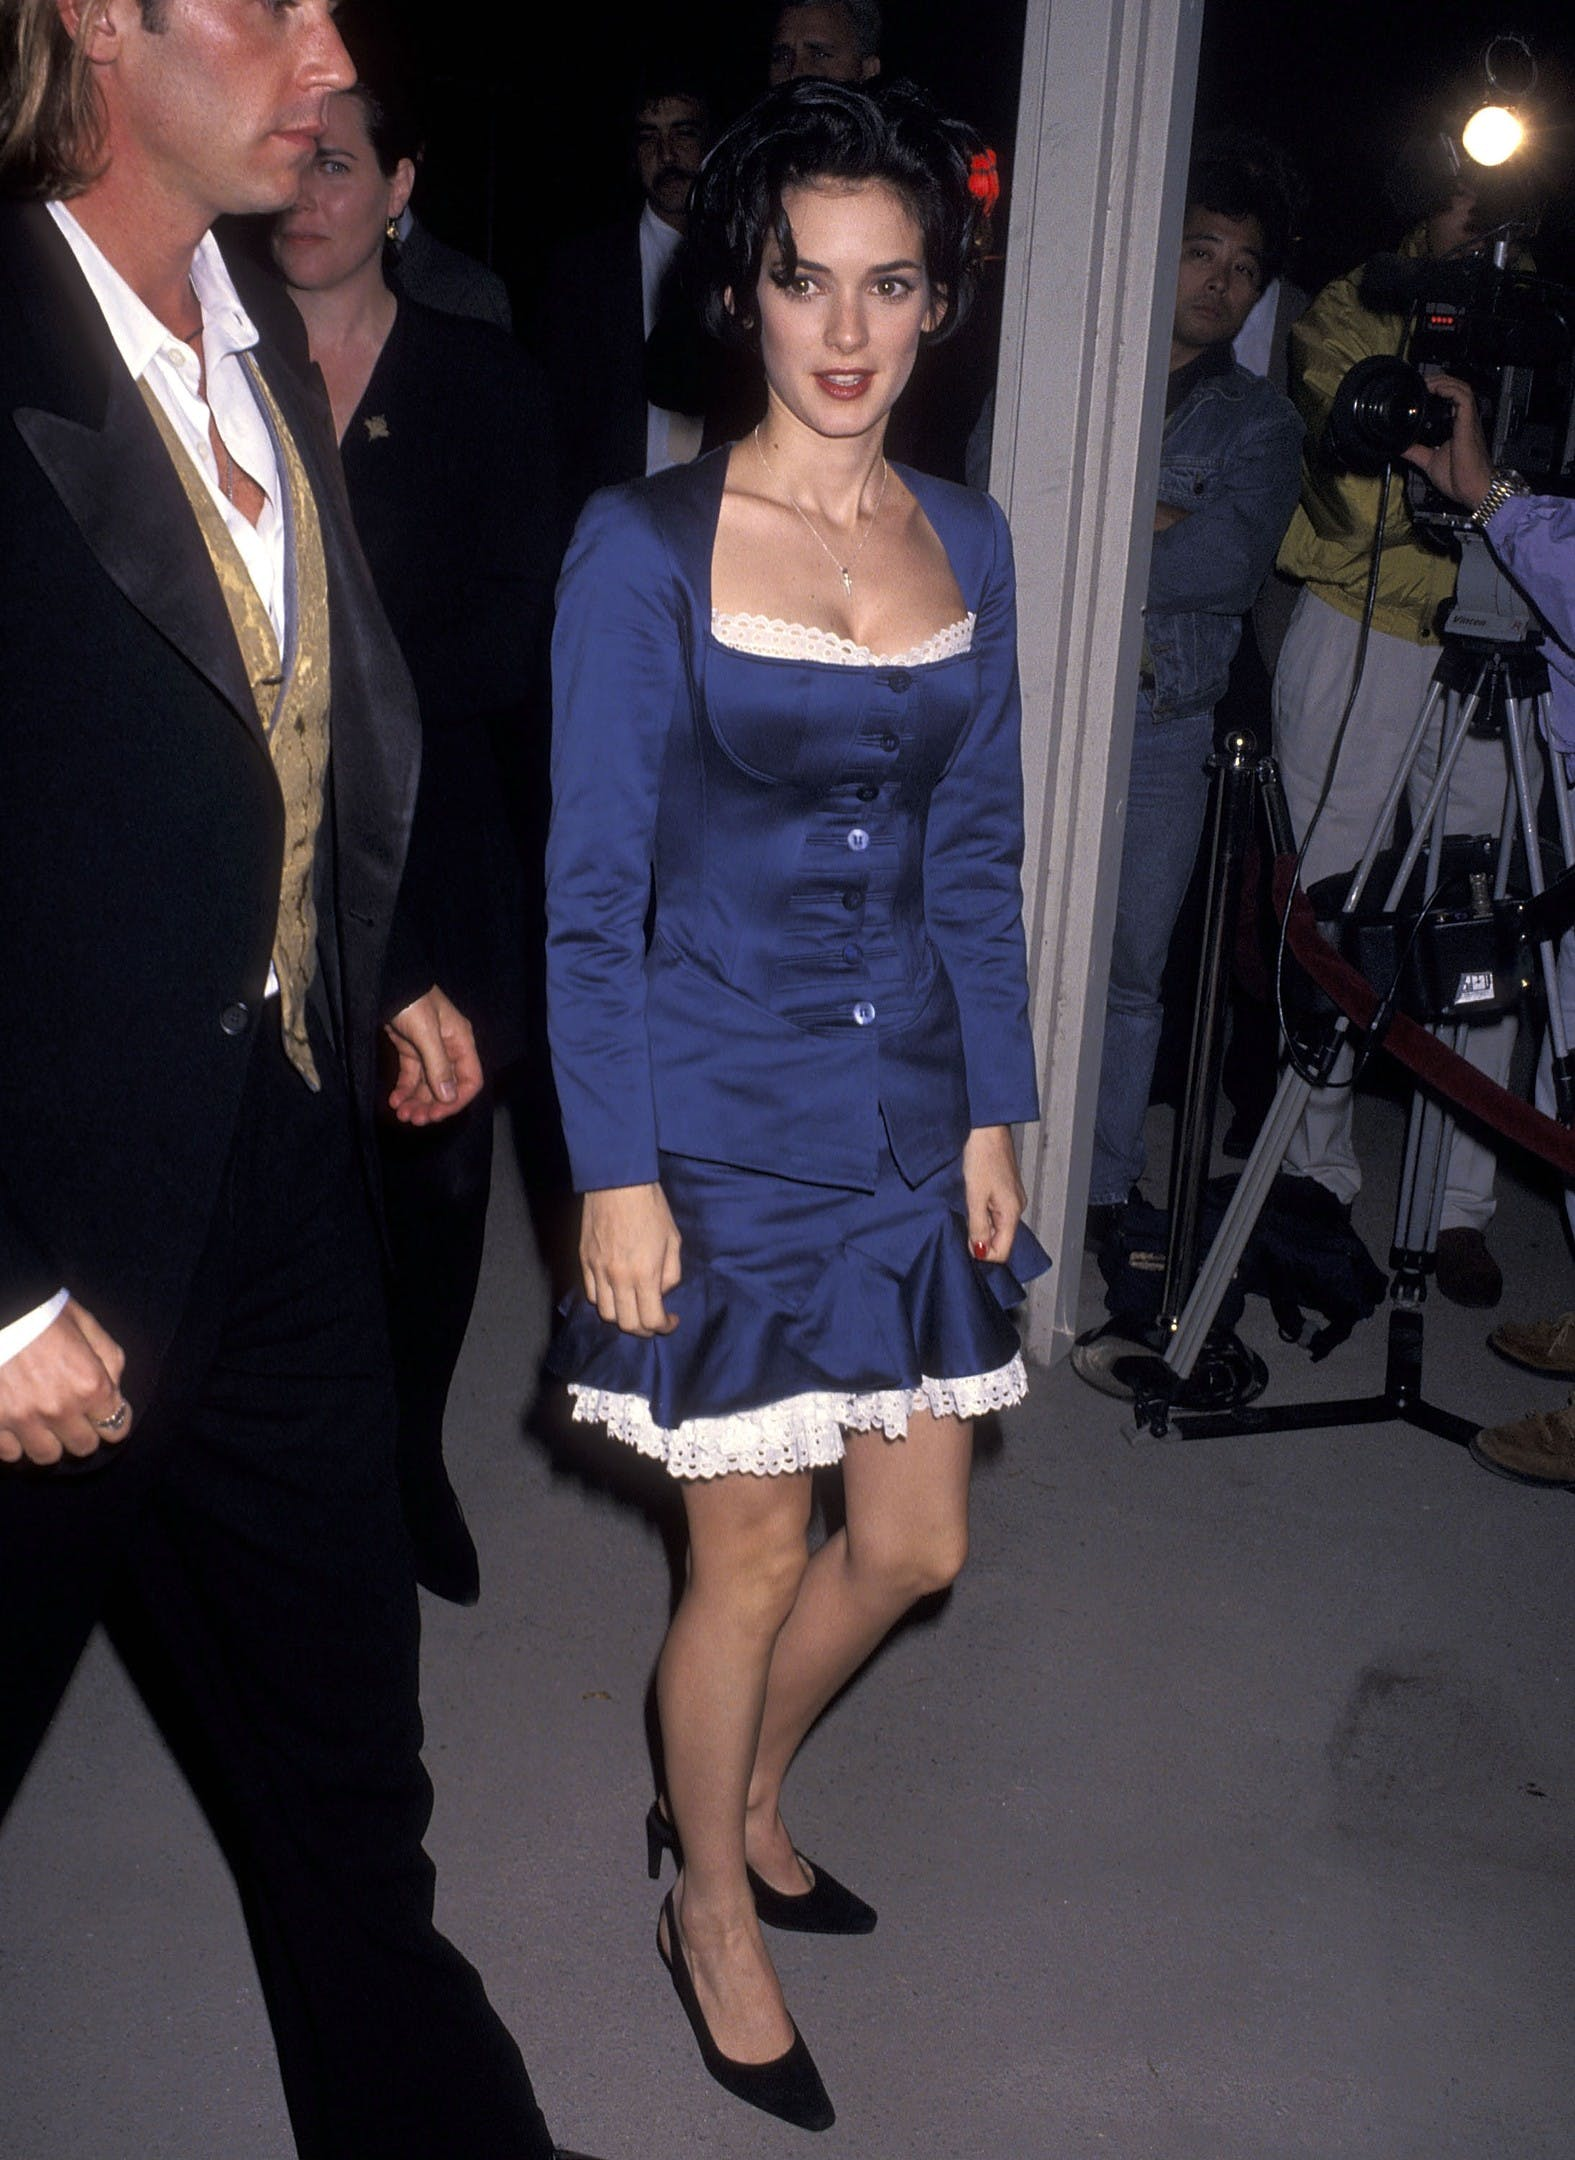 Winona Ryder attends the Dracula premiere in 1992.